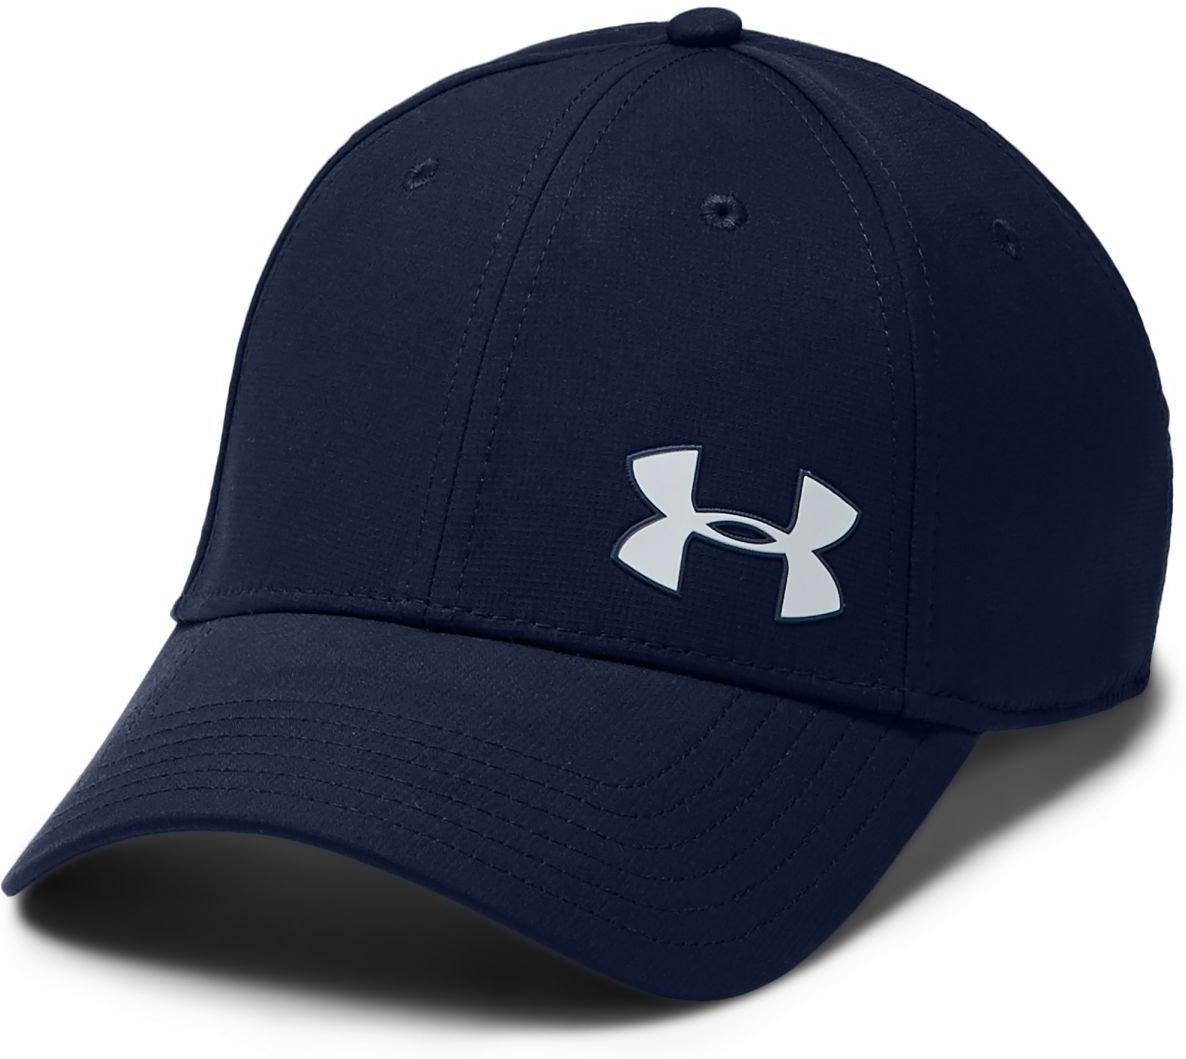 Šilterica Under Armour Men s Golf Headline Cap 3.0